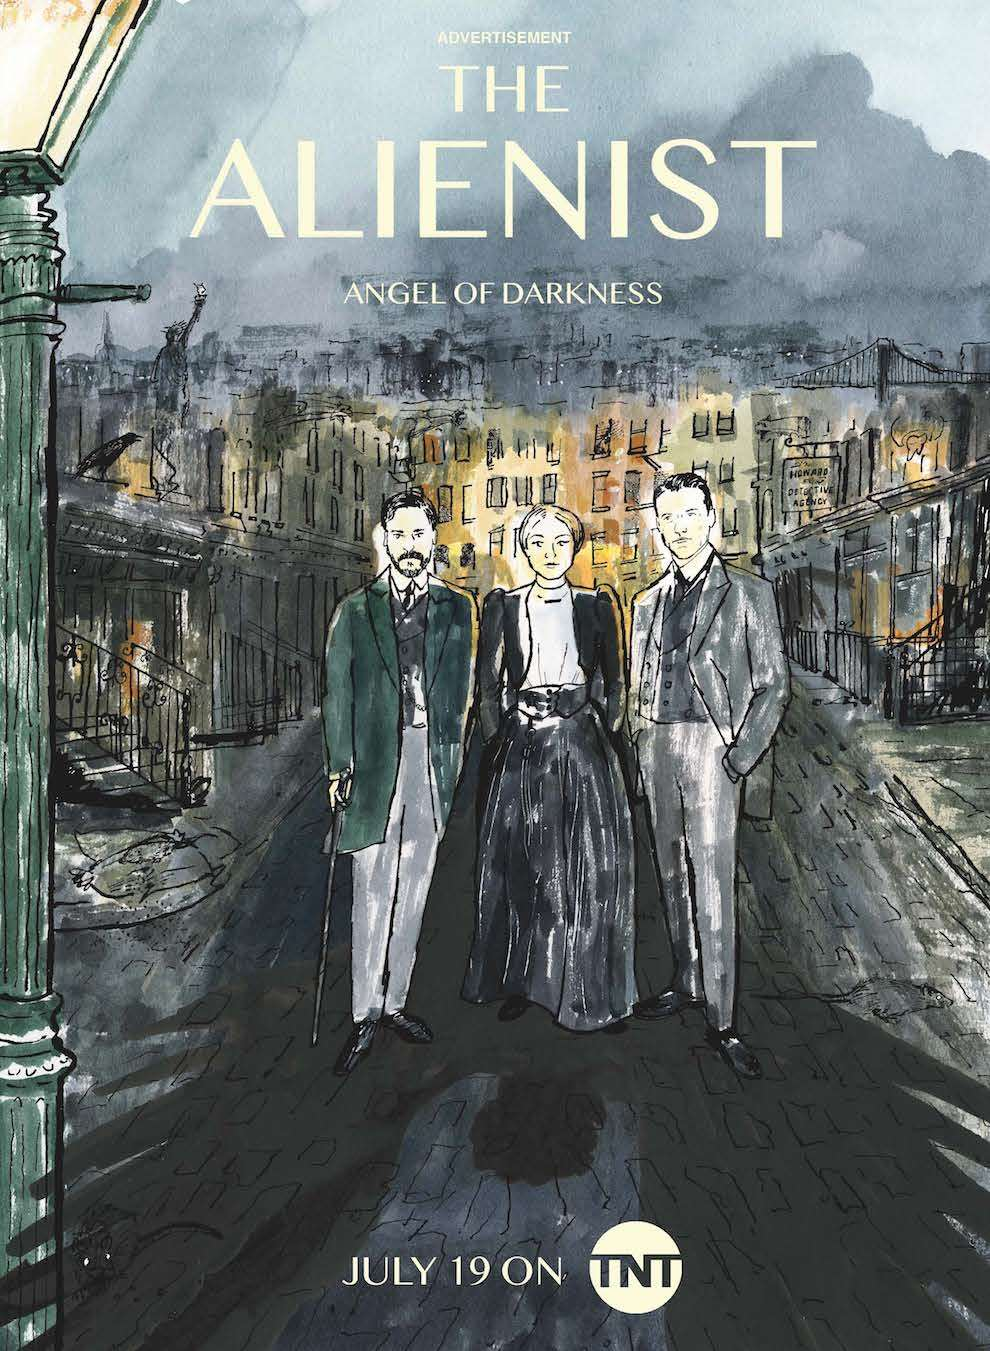 James Oses, Watercolour loose illustration of a poster for the alienist tv show